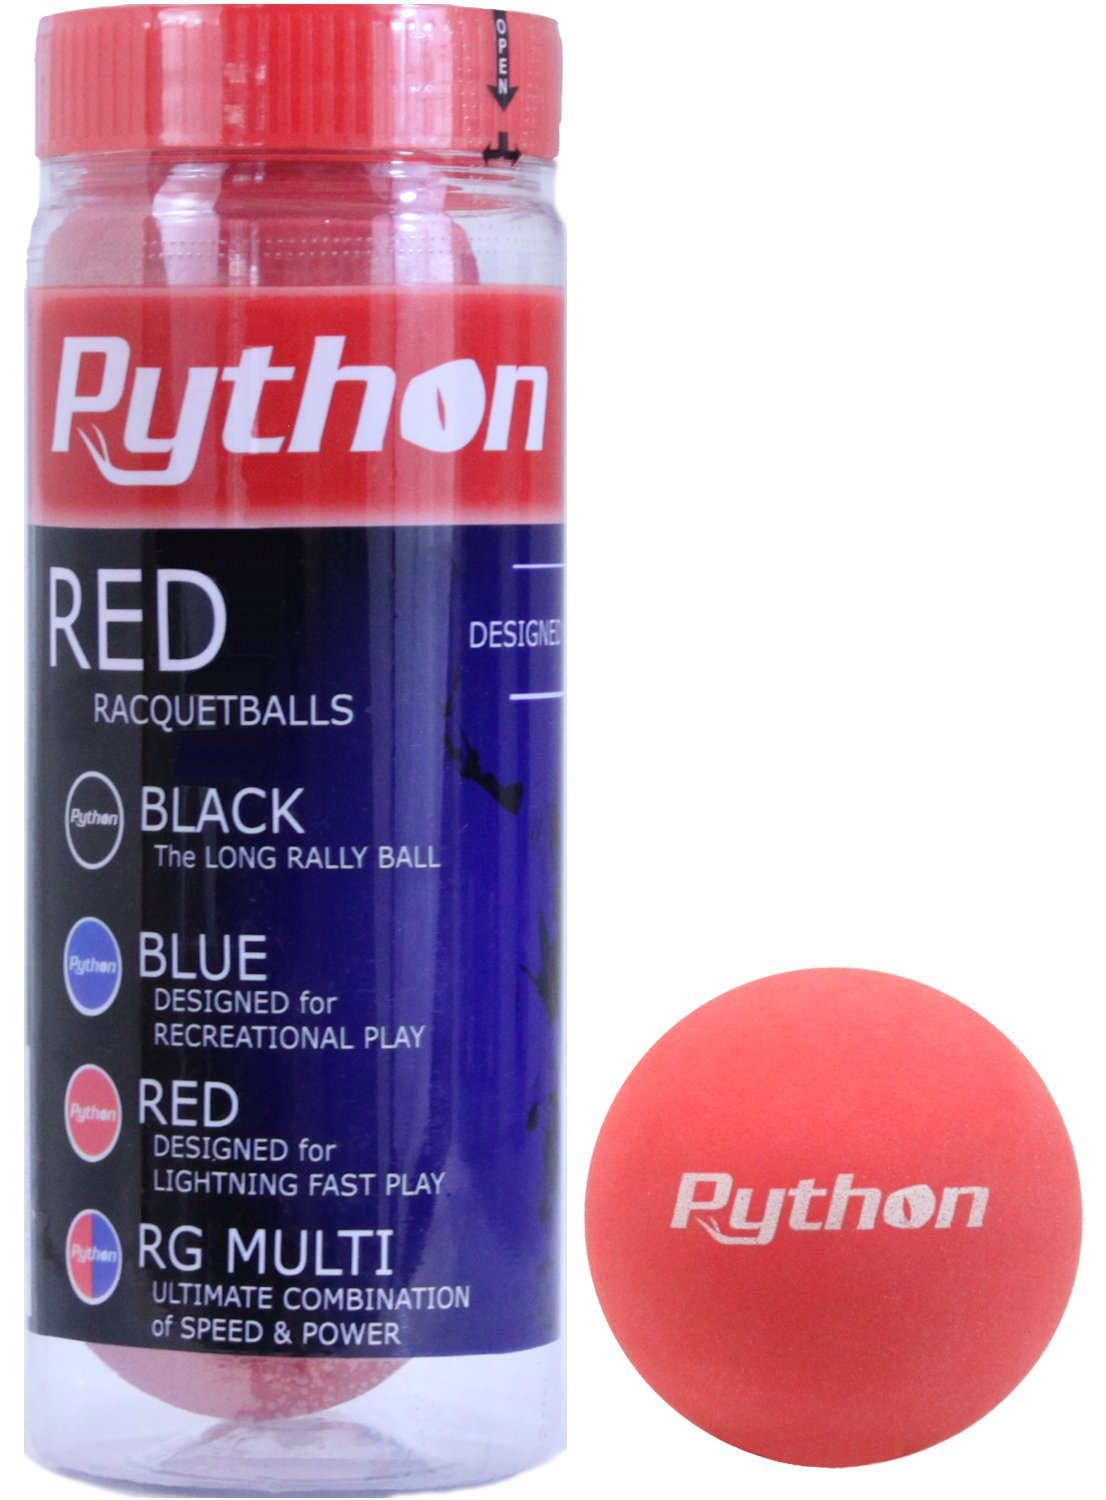 Python 3 Ball Can Red Racquetballs (Lightning Fast!) (1)